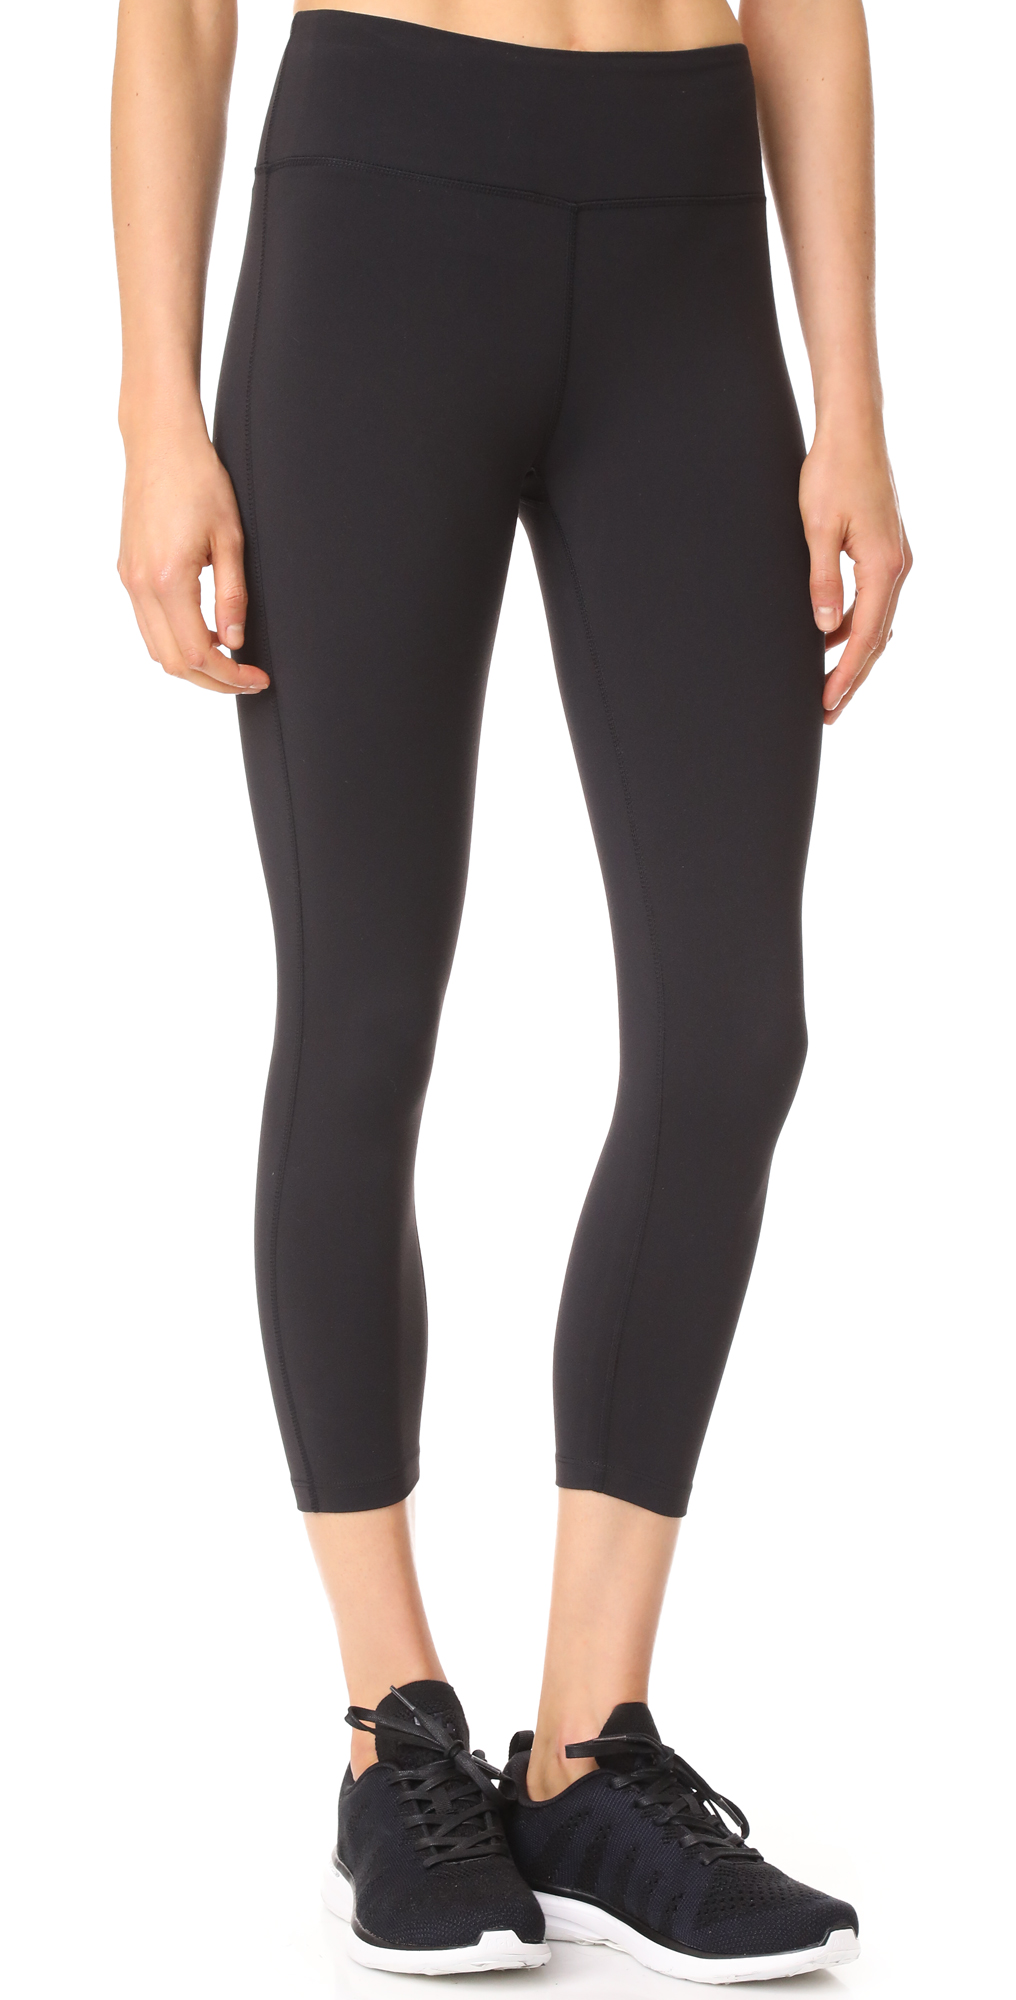 Stride Mid Rise Leggings Splits59